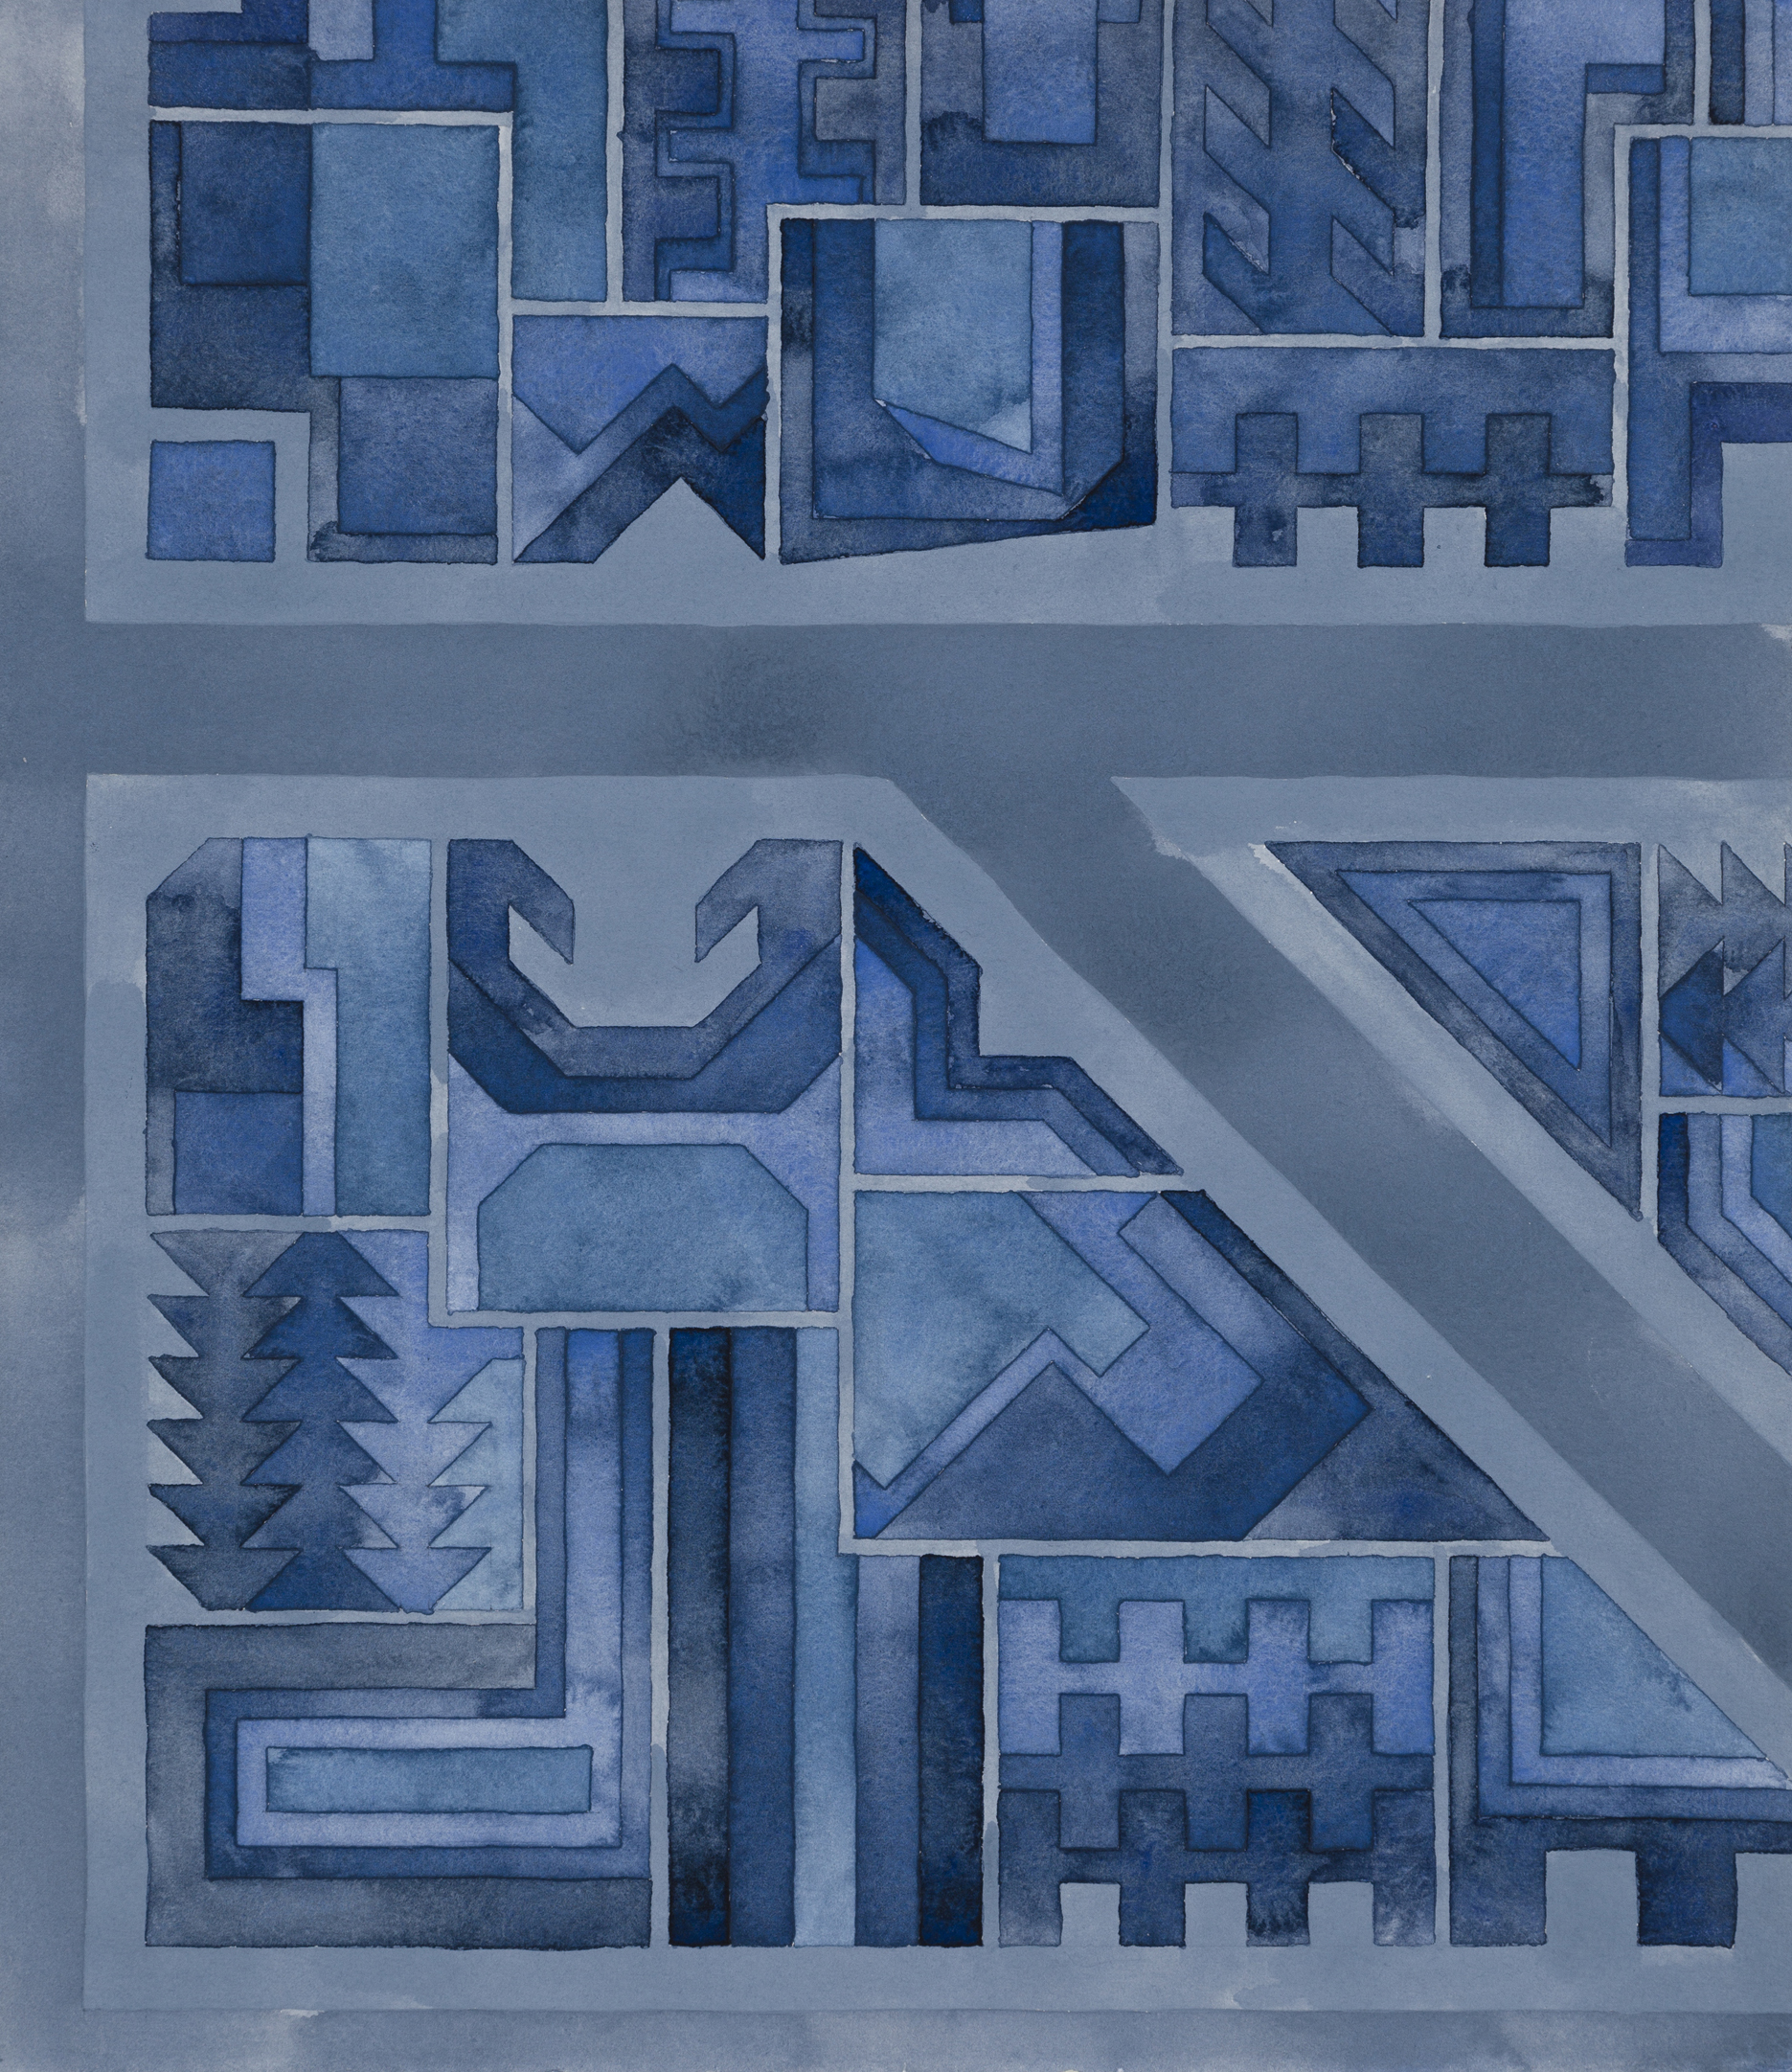 Cityscape 24, 2014  watercolor on watercolor paper  16.5 x 14.5 inches